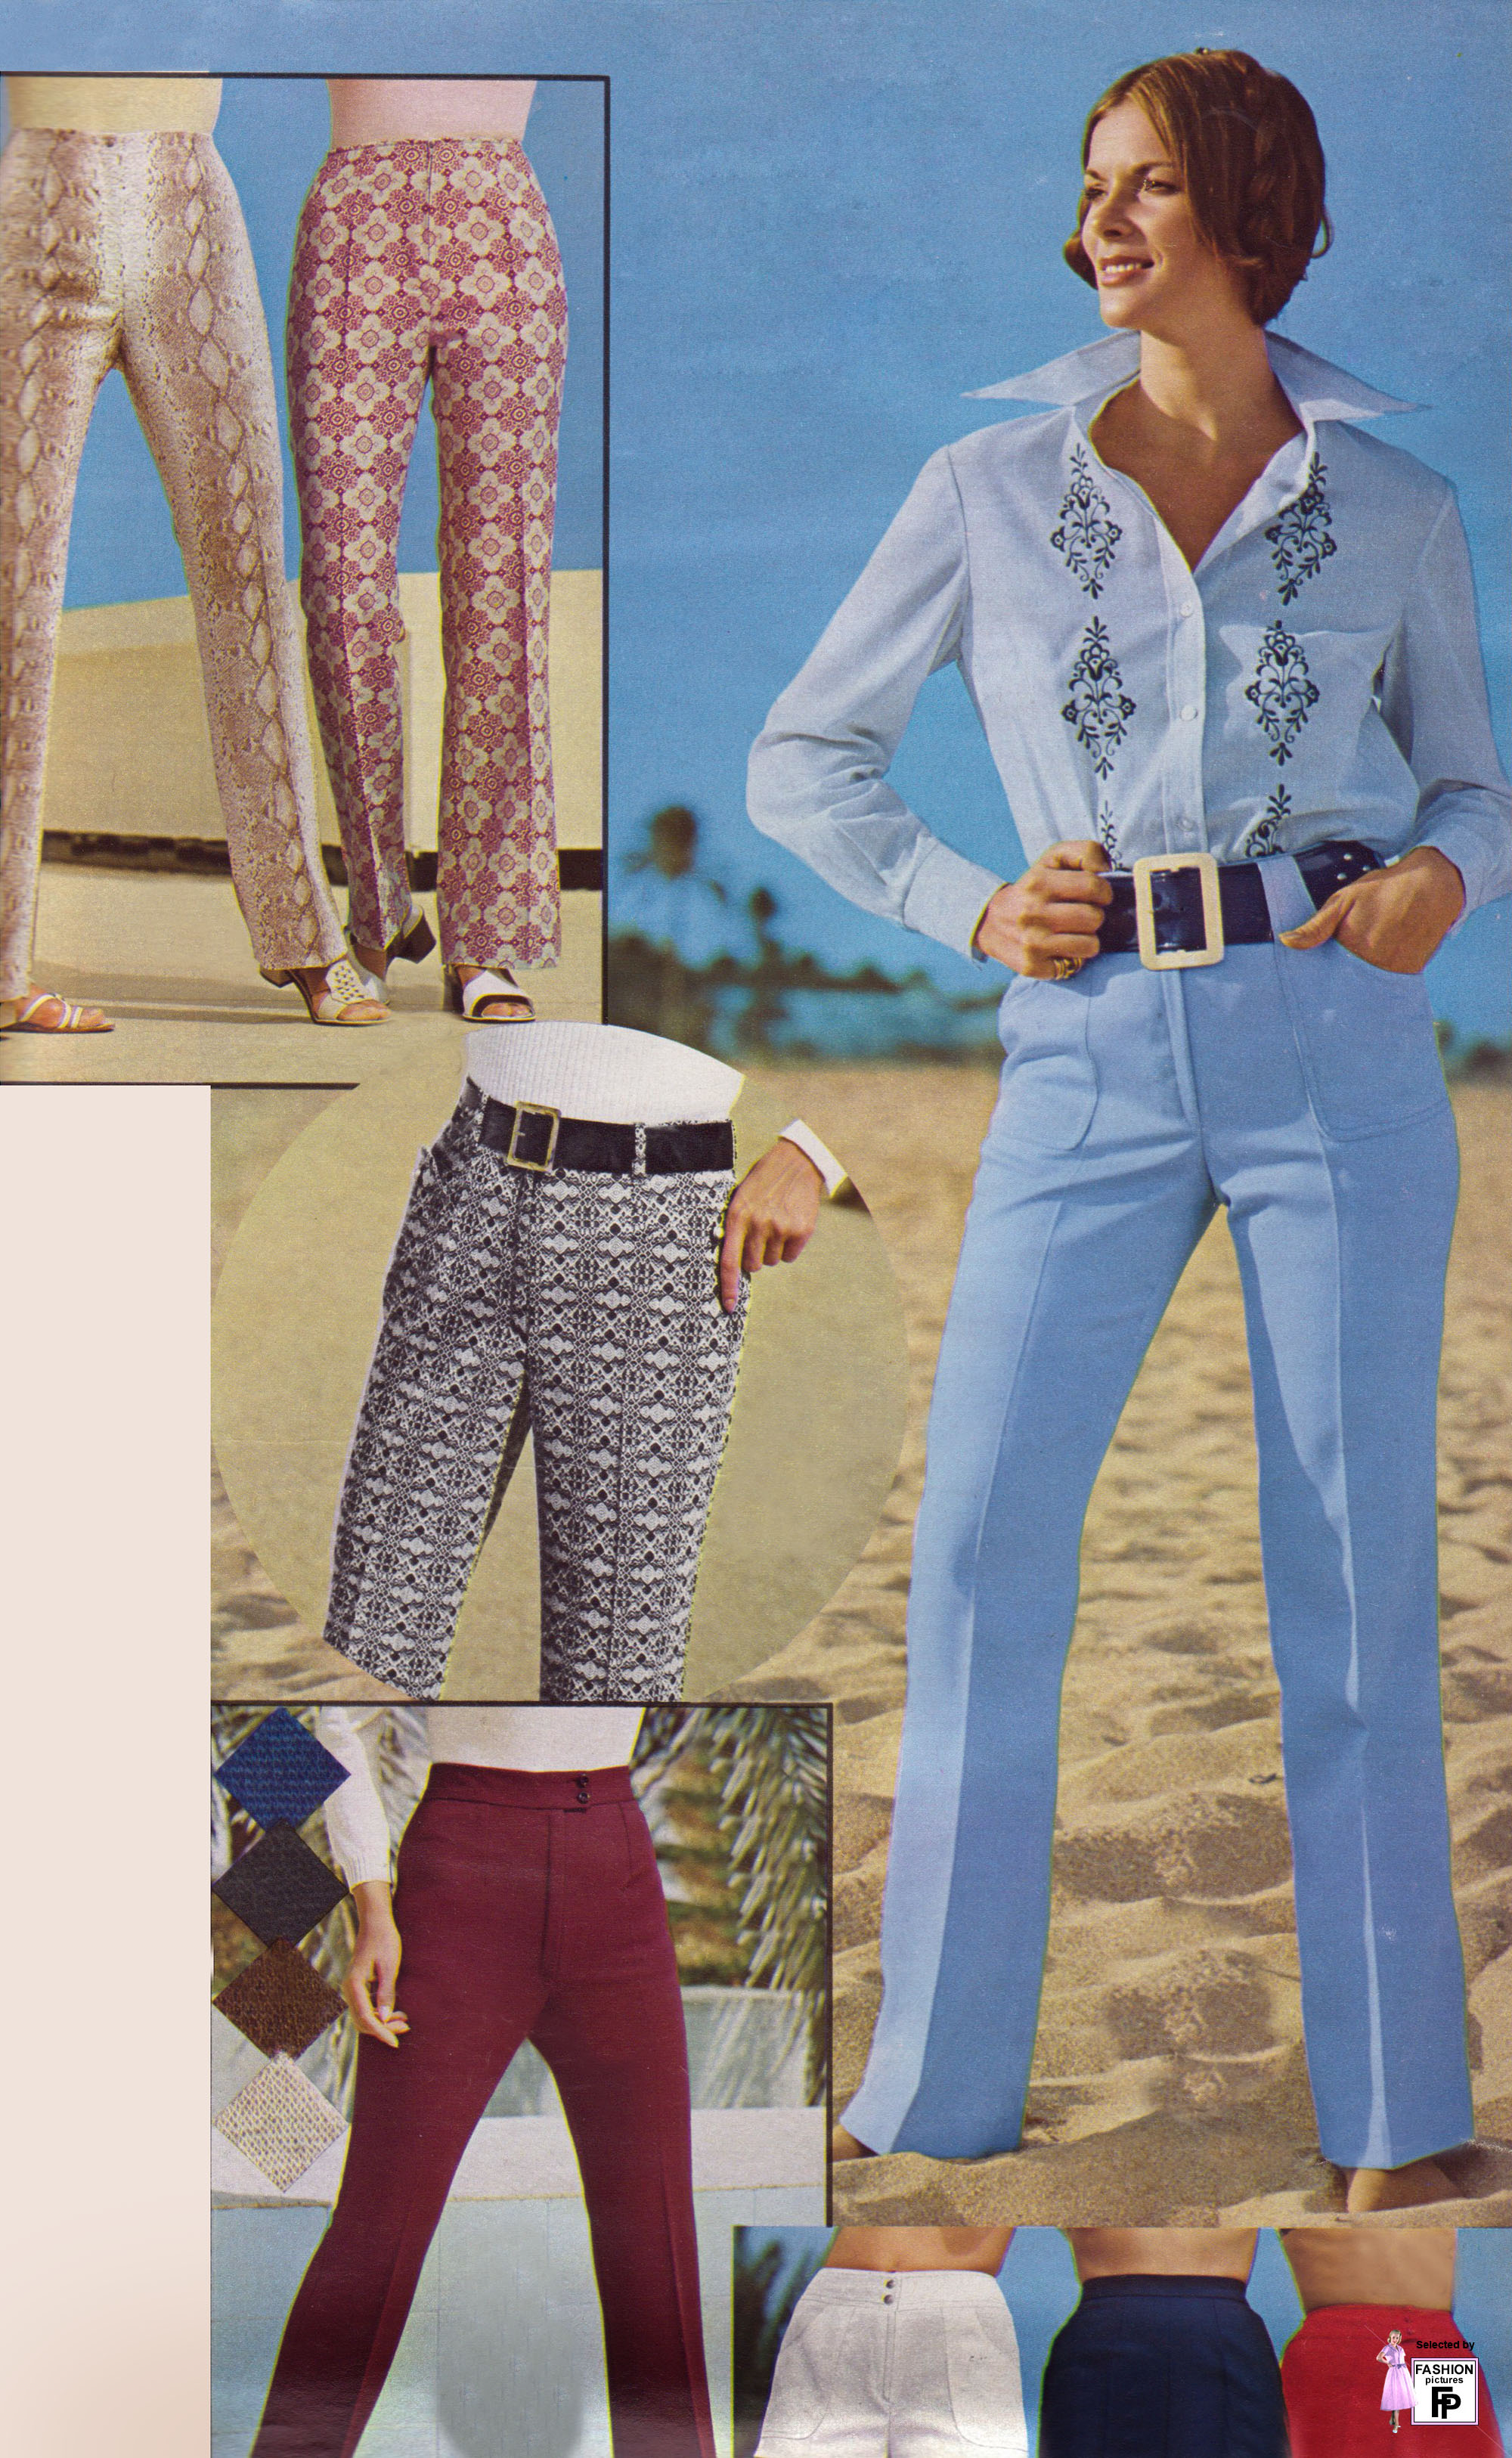 Retro fashion pictures from the 1950s 1960s 1970s 1980s and 1990s. 2b7fe59baa1